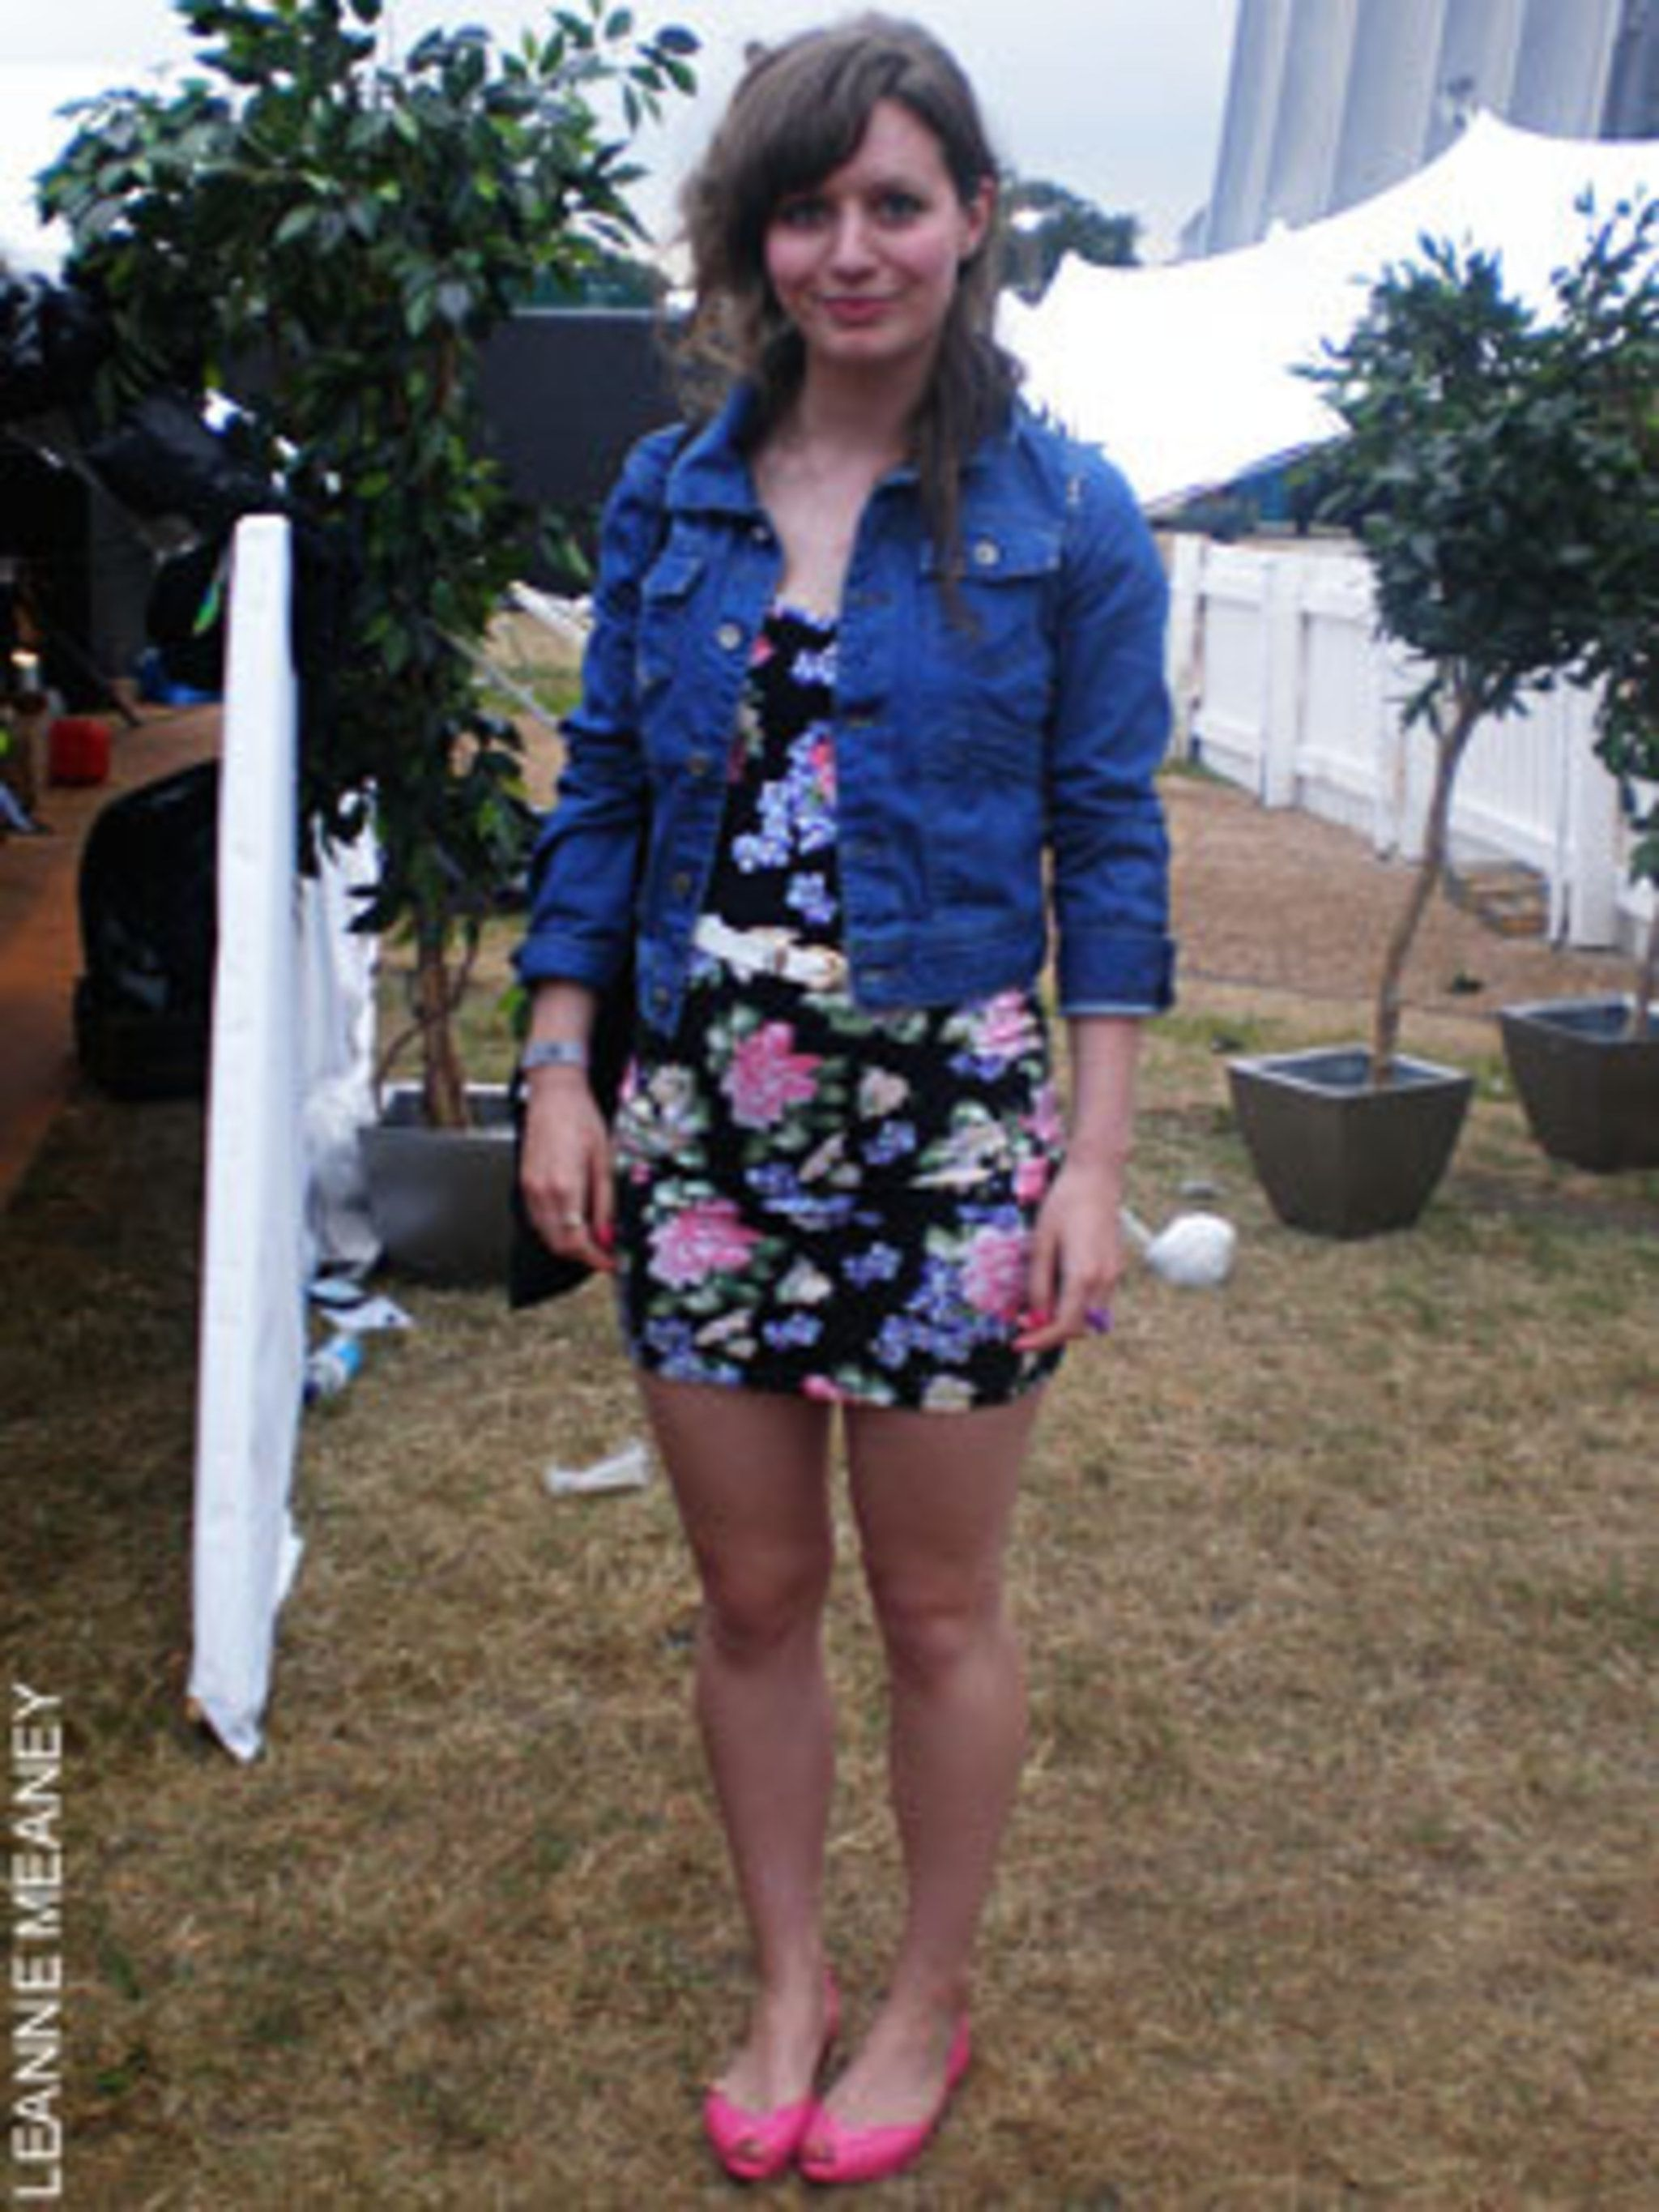 <p>Lucy Sanderson, 23, working in marketing for Diesel and Diesel Music wearing a Diesel denim jacket, Topshop dress and belt and a pair of Melissa shoes</p>